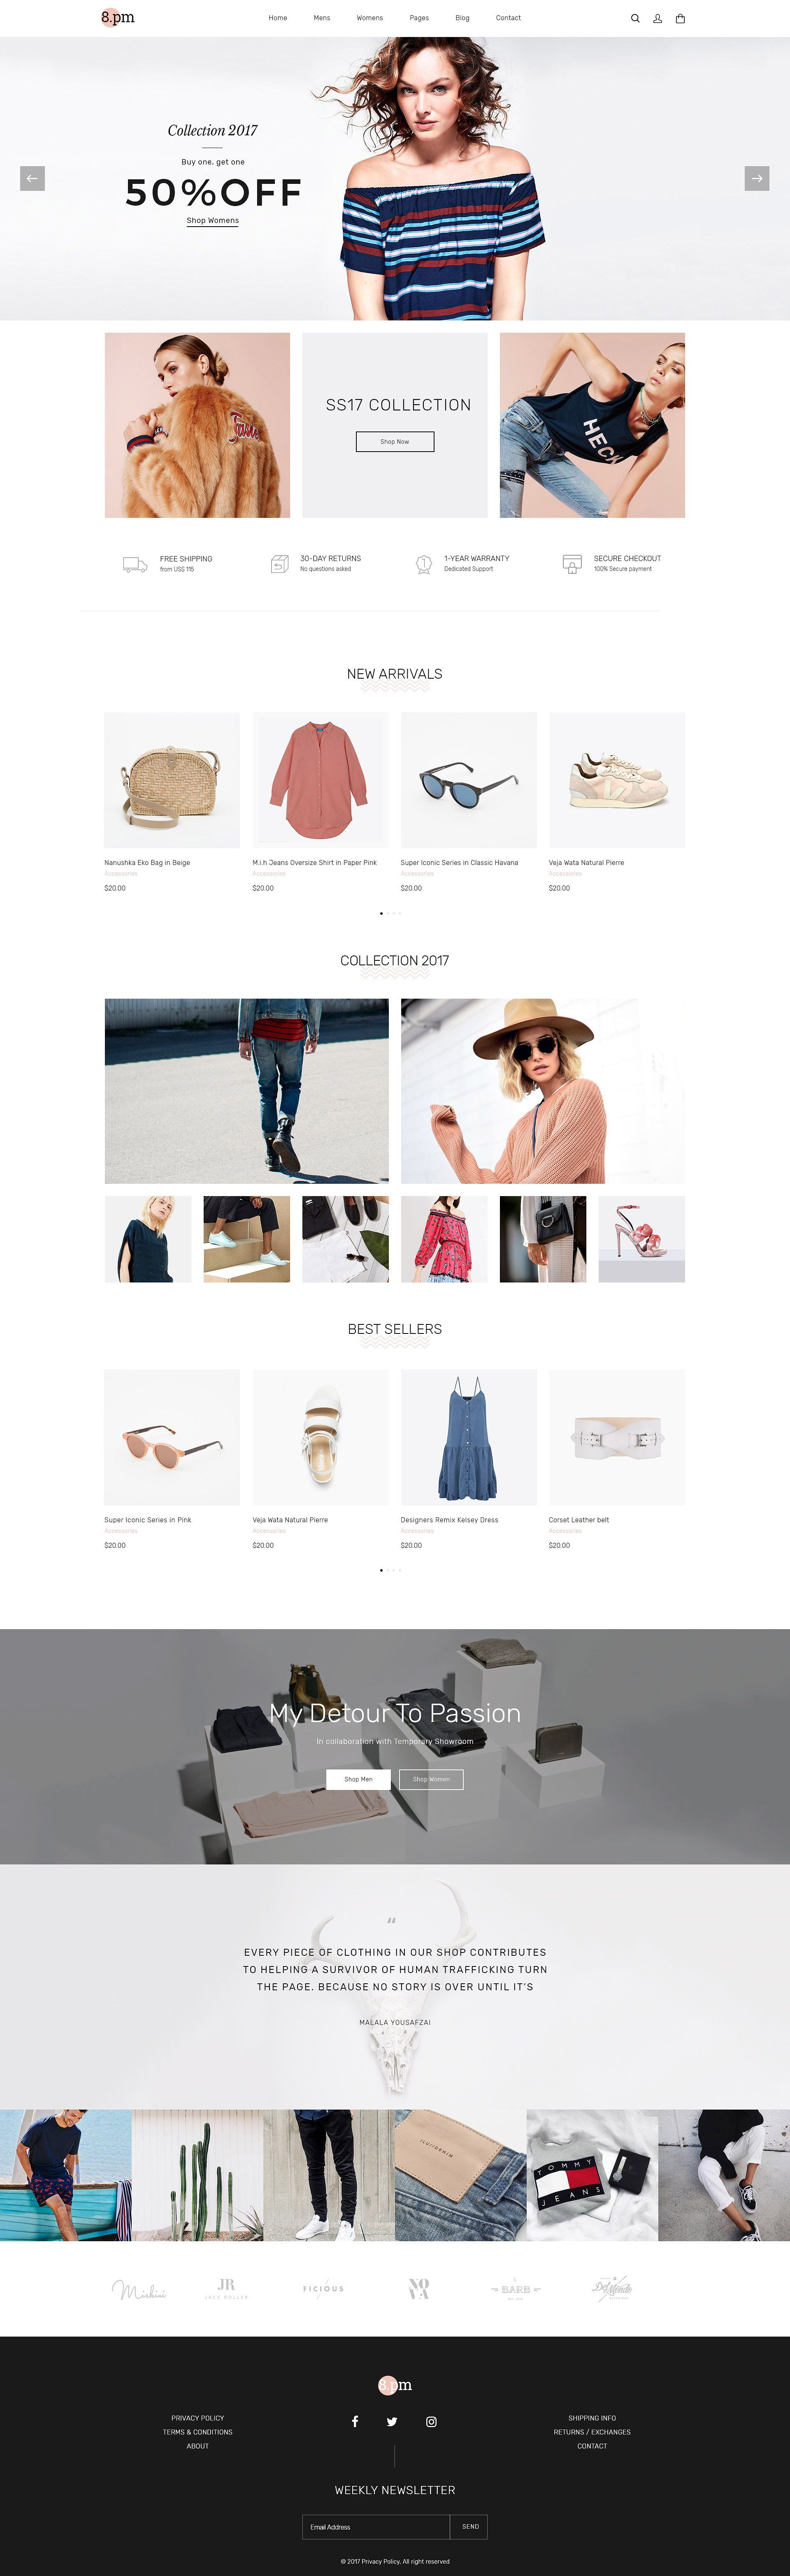 Eightpm Fashion WordPress Theme by Opal Wordpress Theme